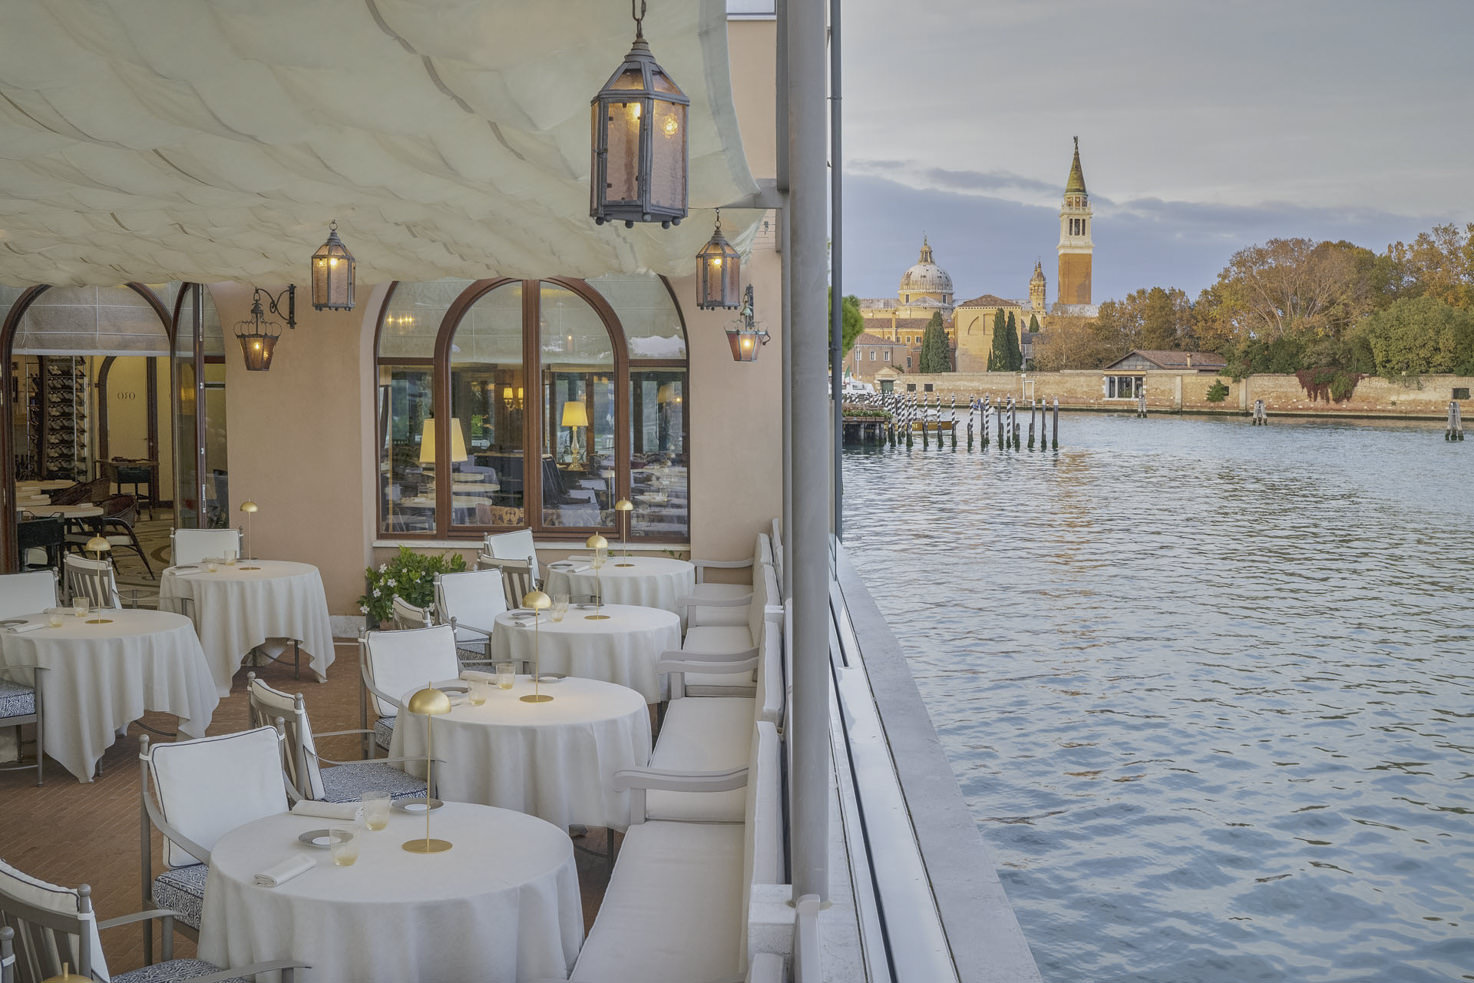 Terrace restaurant with sea view